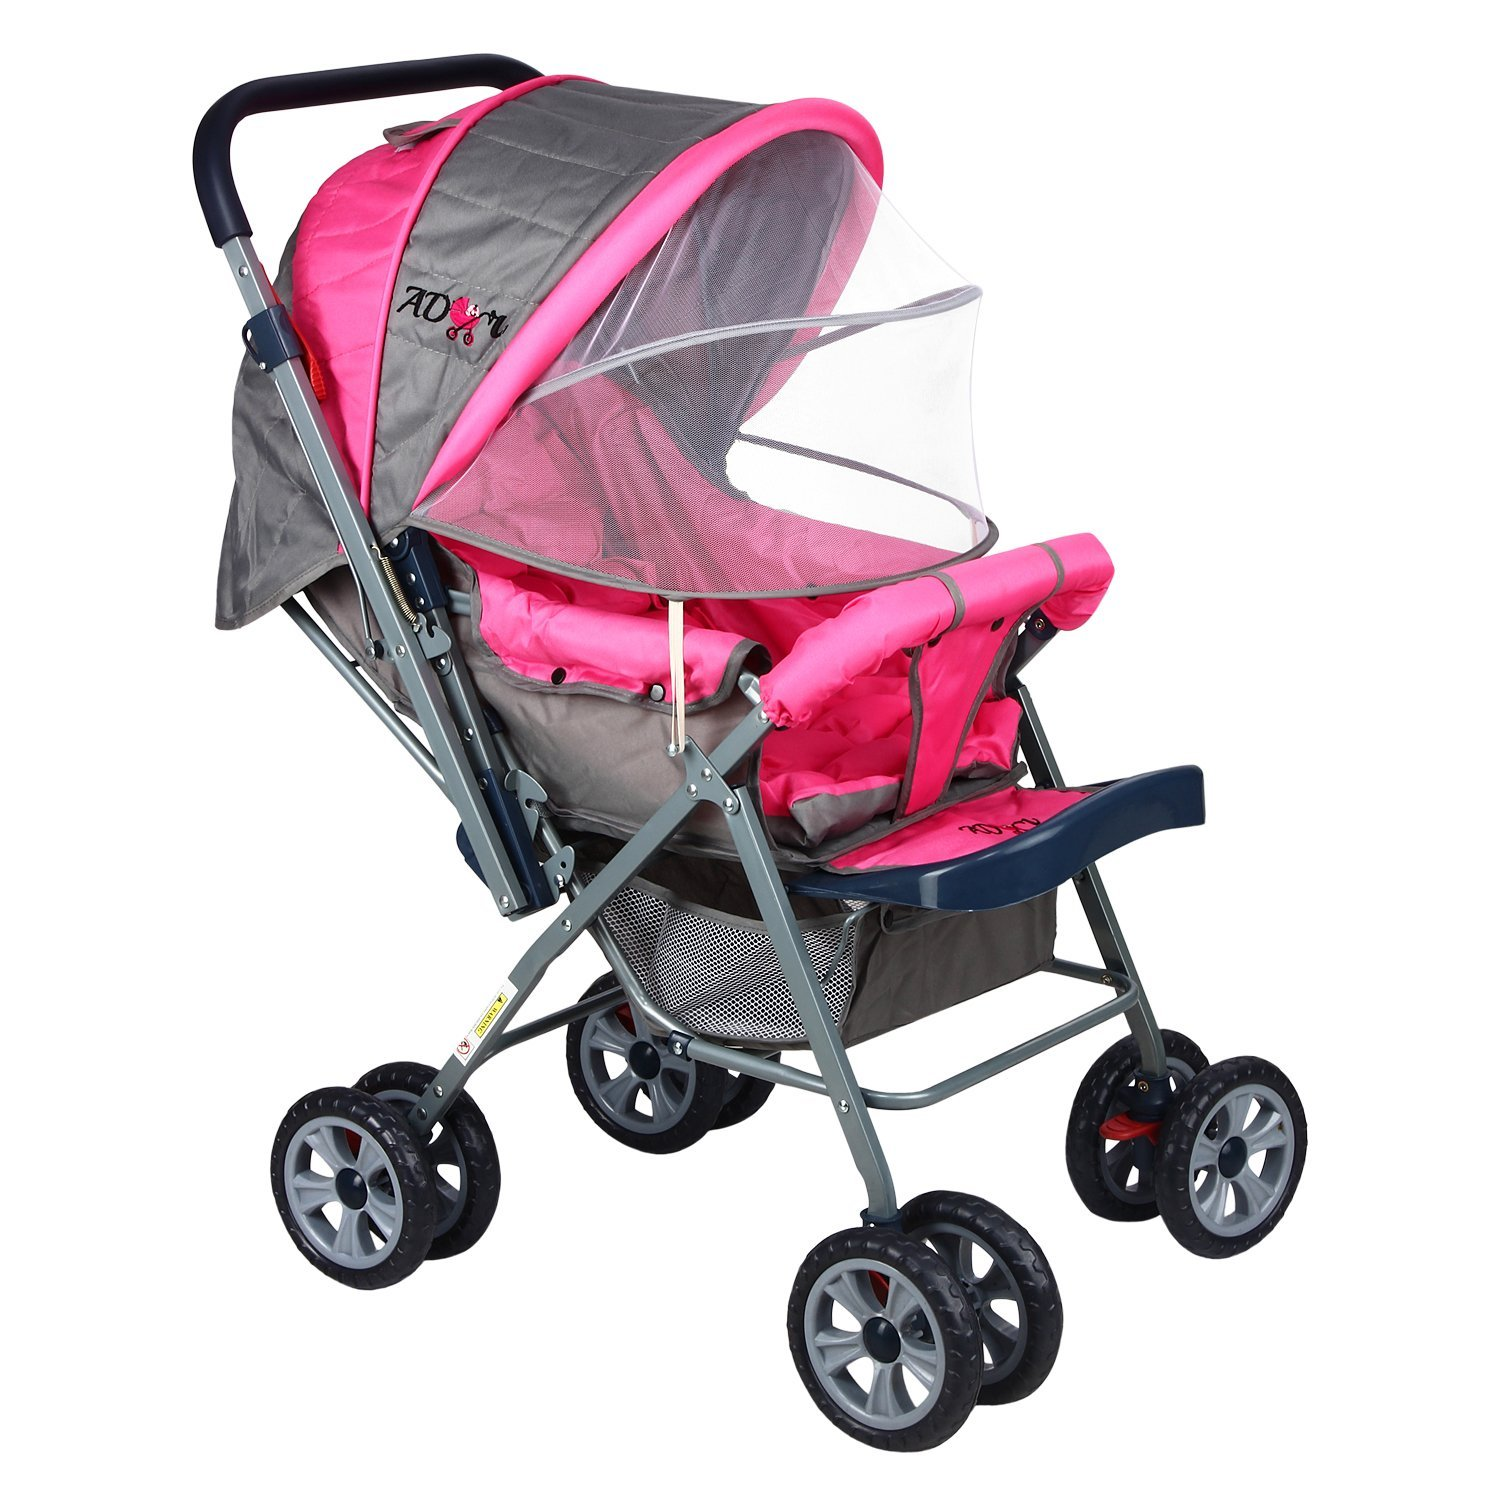 Toddler Stroller India Compare Buy Ador Comfort Baby Stroller 33a Canopy Pink Online In India At Best Price Healthgenie In